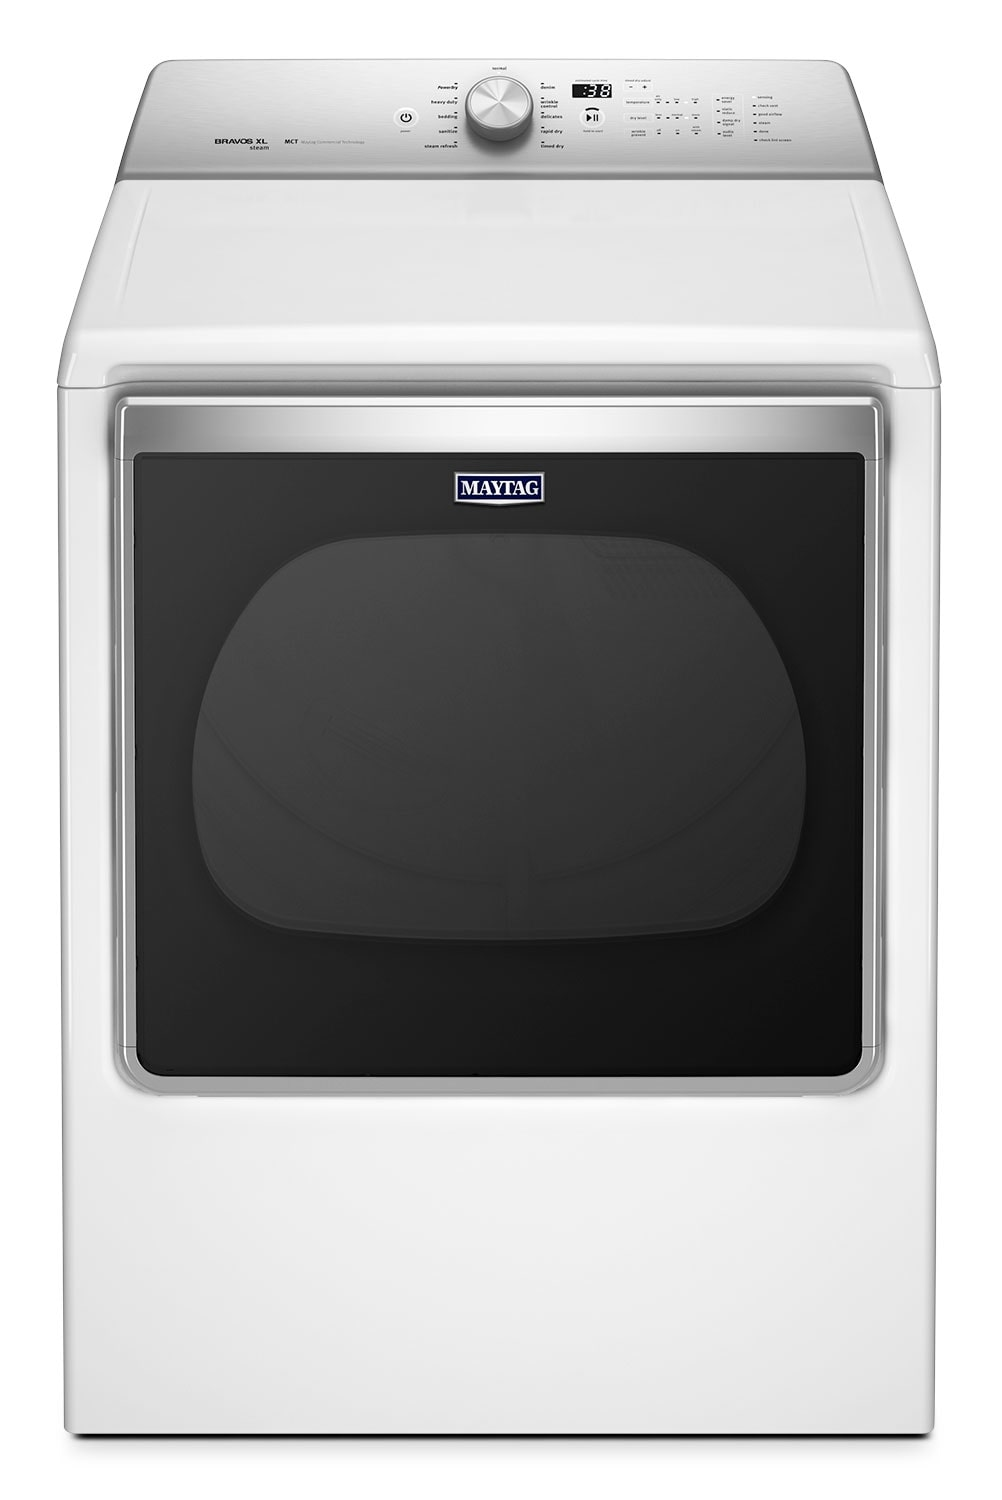 Washers and Dryers - Maytag 8.8 Cu. Ft. Top-Load Gas Dryer with Steam Refresh – White